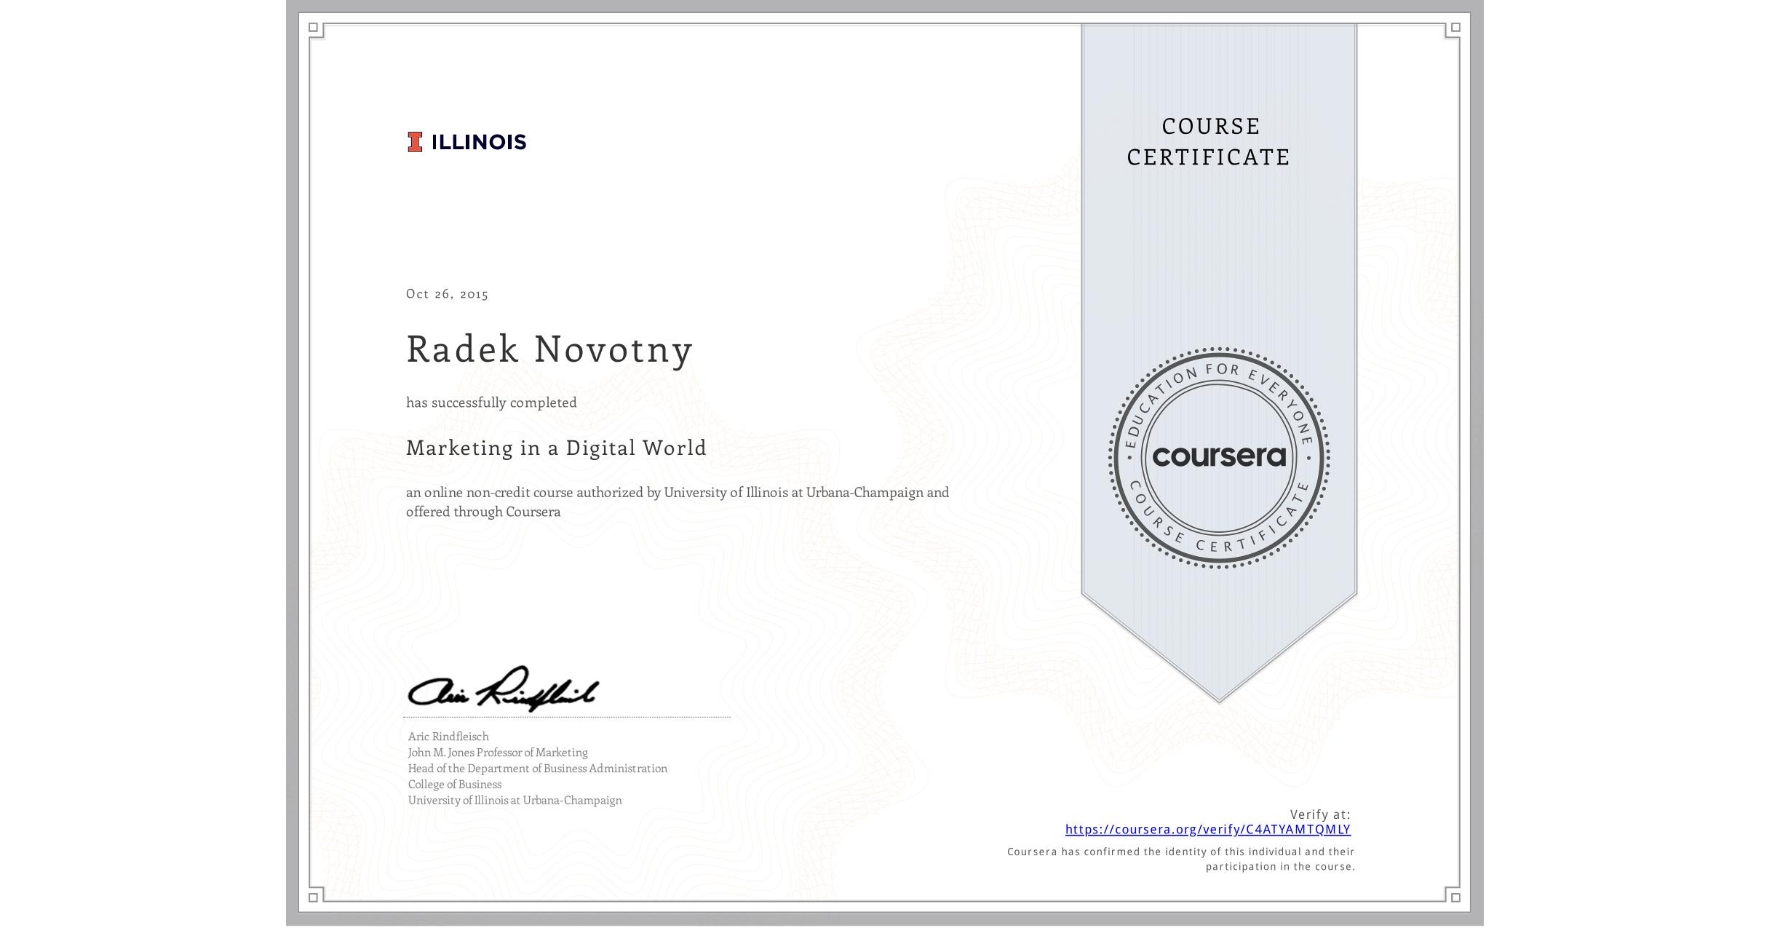 View certificate for Radek Novotny, Marketing in a Digital World, an online non-credit course authorized by University of Illinois at Urbana-Champaign and offered through Coursera